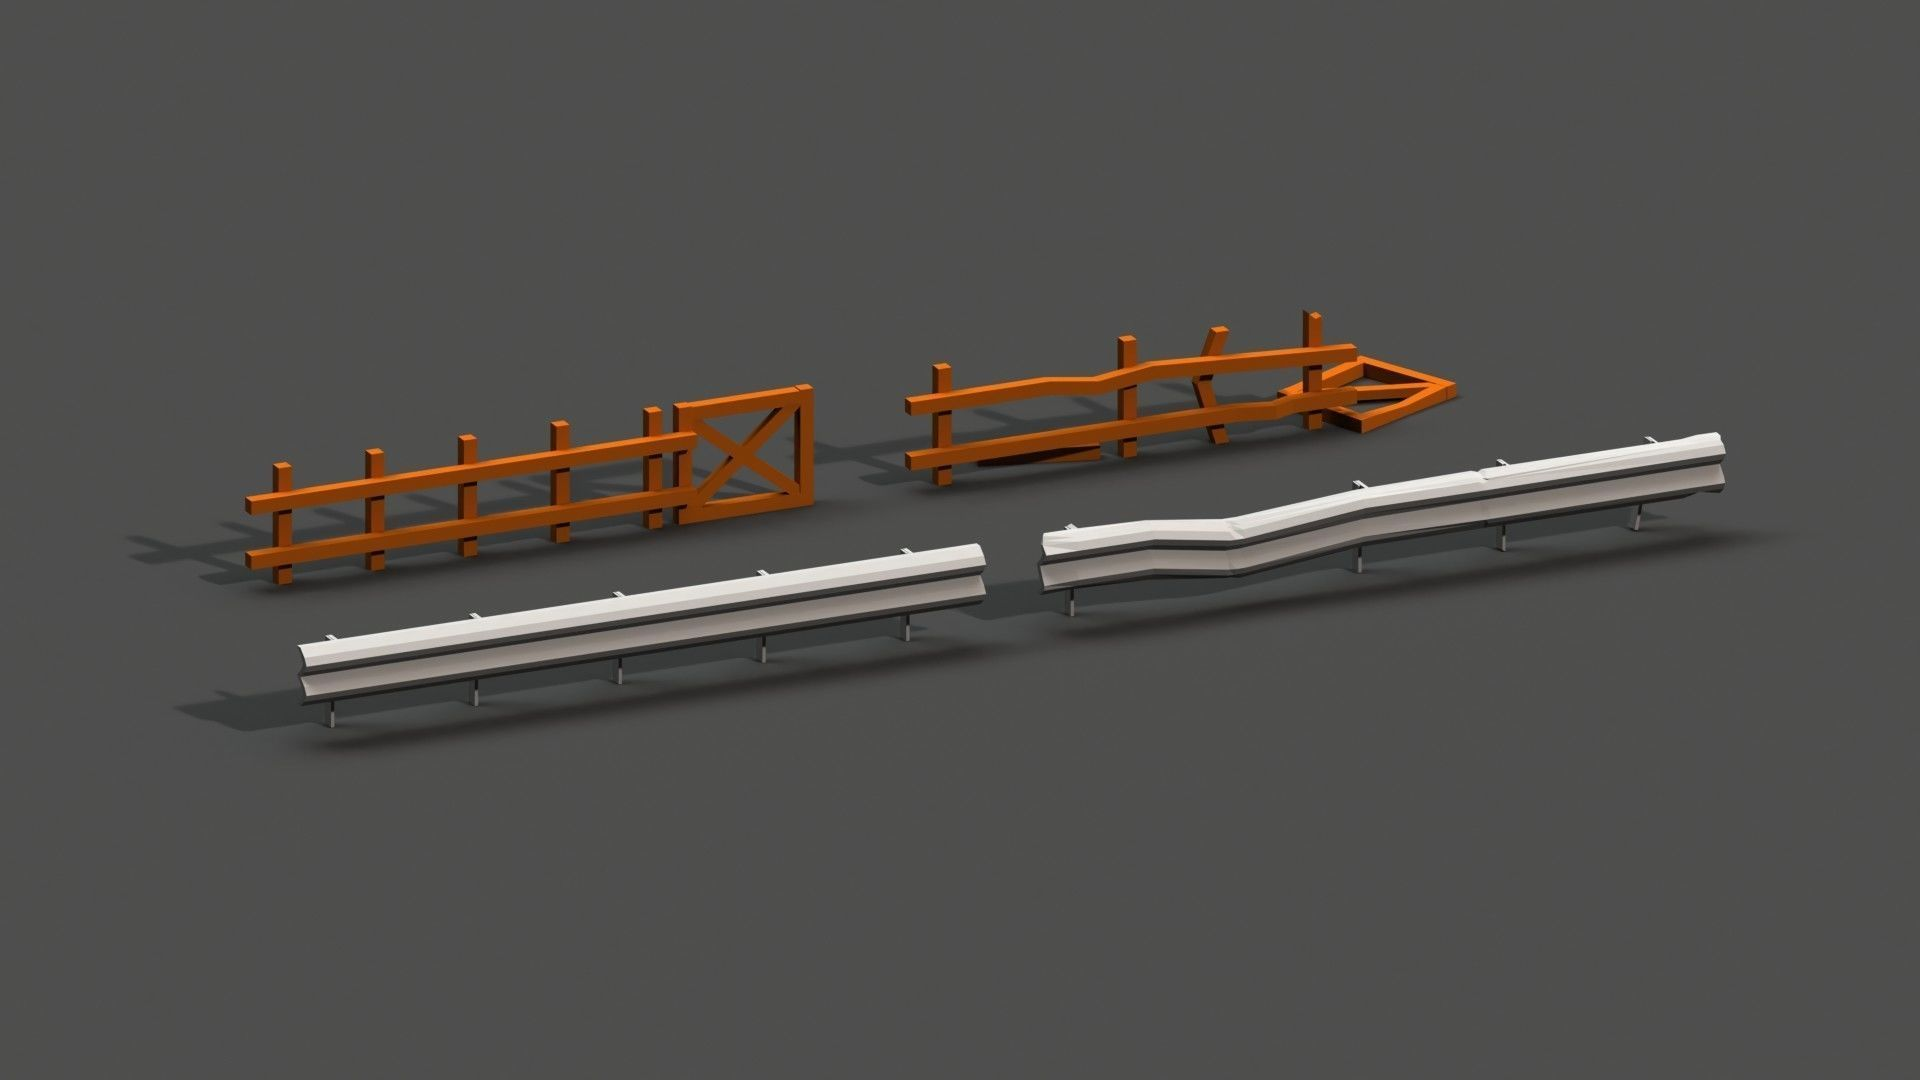 Post Apocalyptic Road Barrier and Wooden Fence